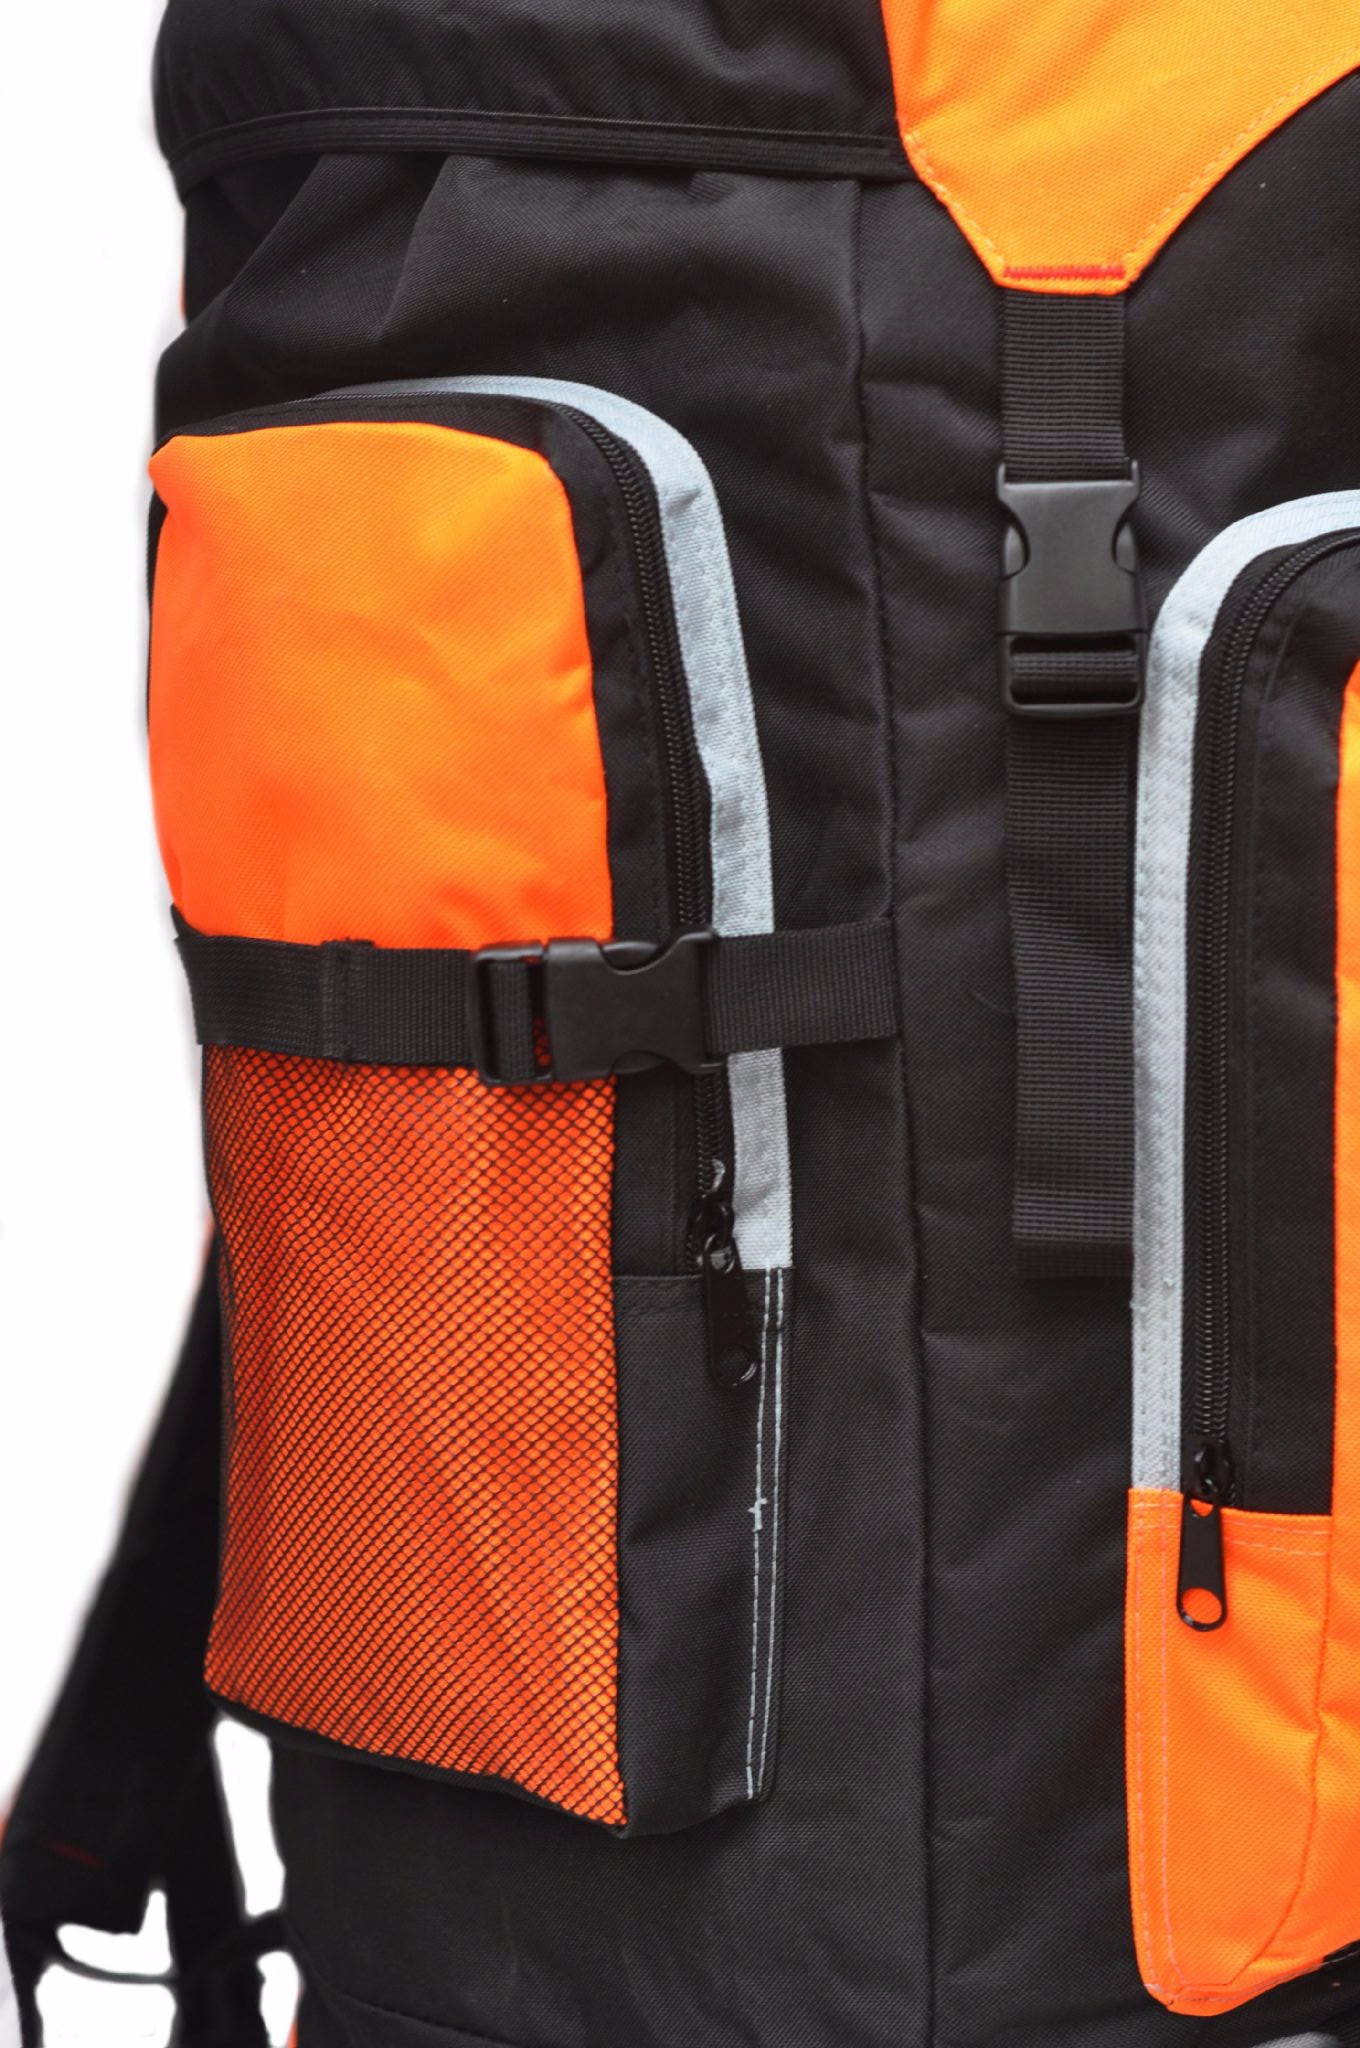 Extra Large foolsGold® Hiking Camping Travel Backpack - Black Orange d1fe6e2e3698a